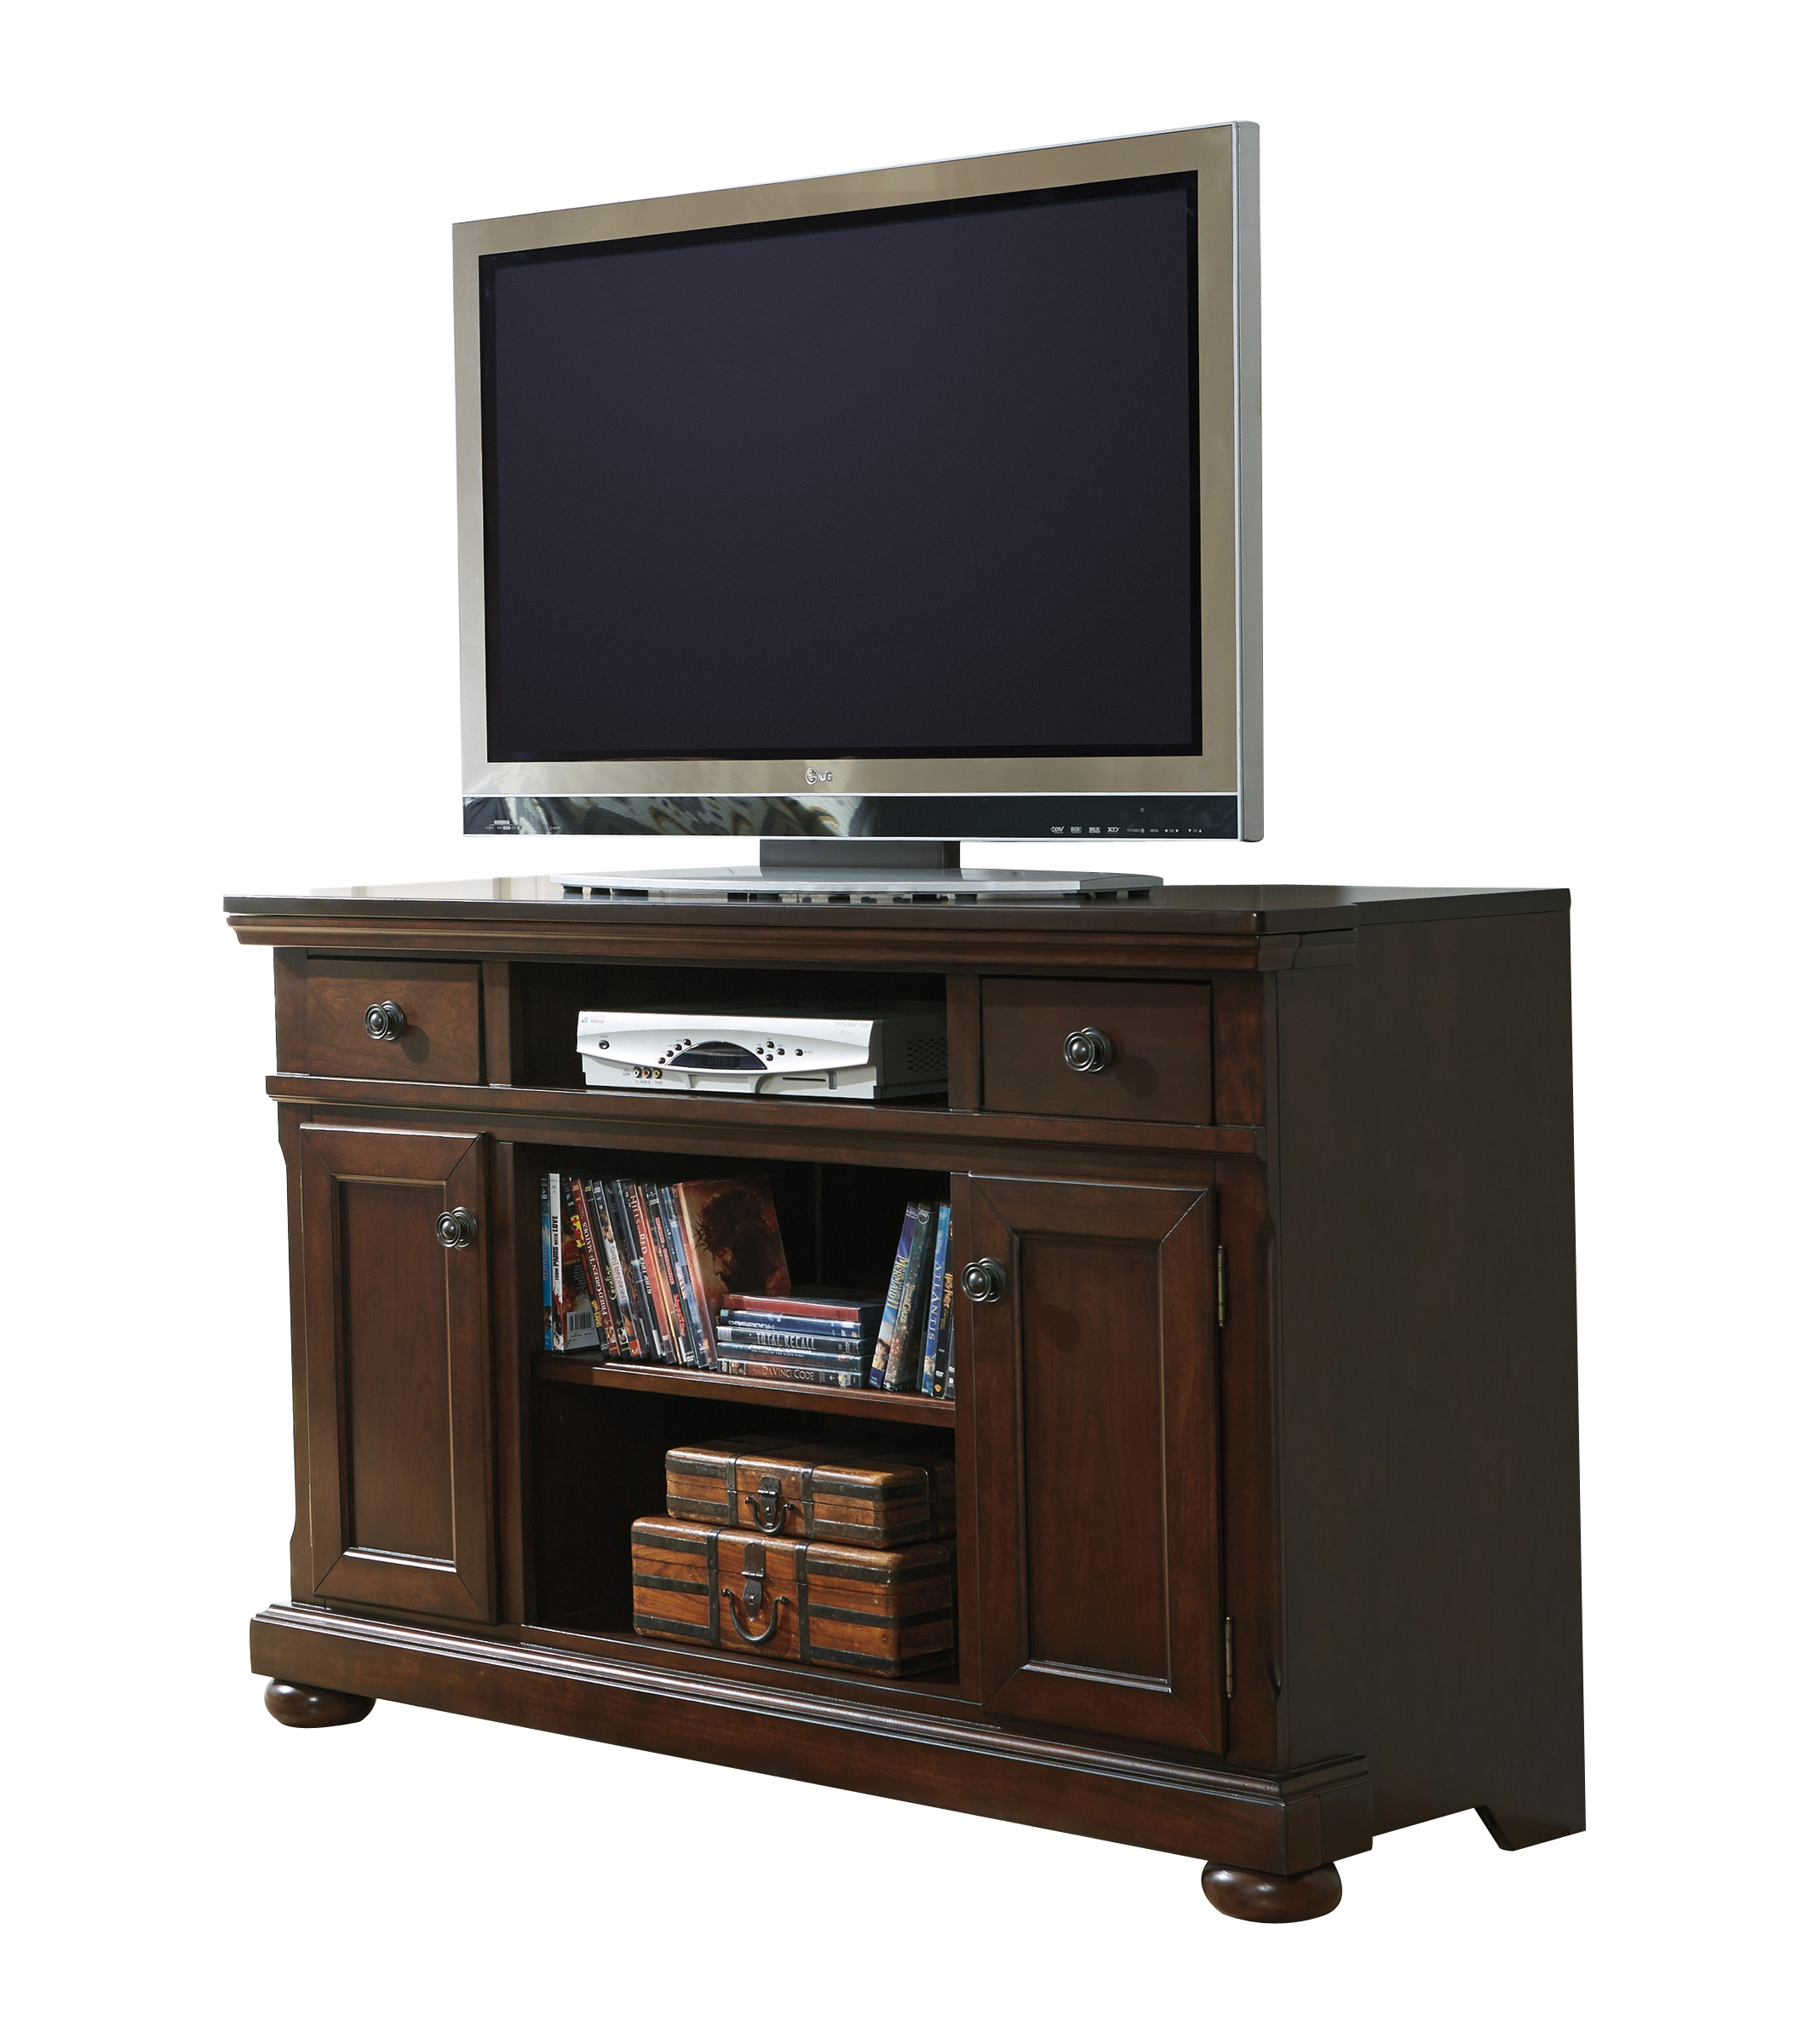 Ashley Furniture Porter Burnished Brown Lg Tv Stand The Classy Home